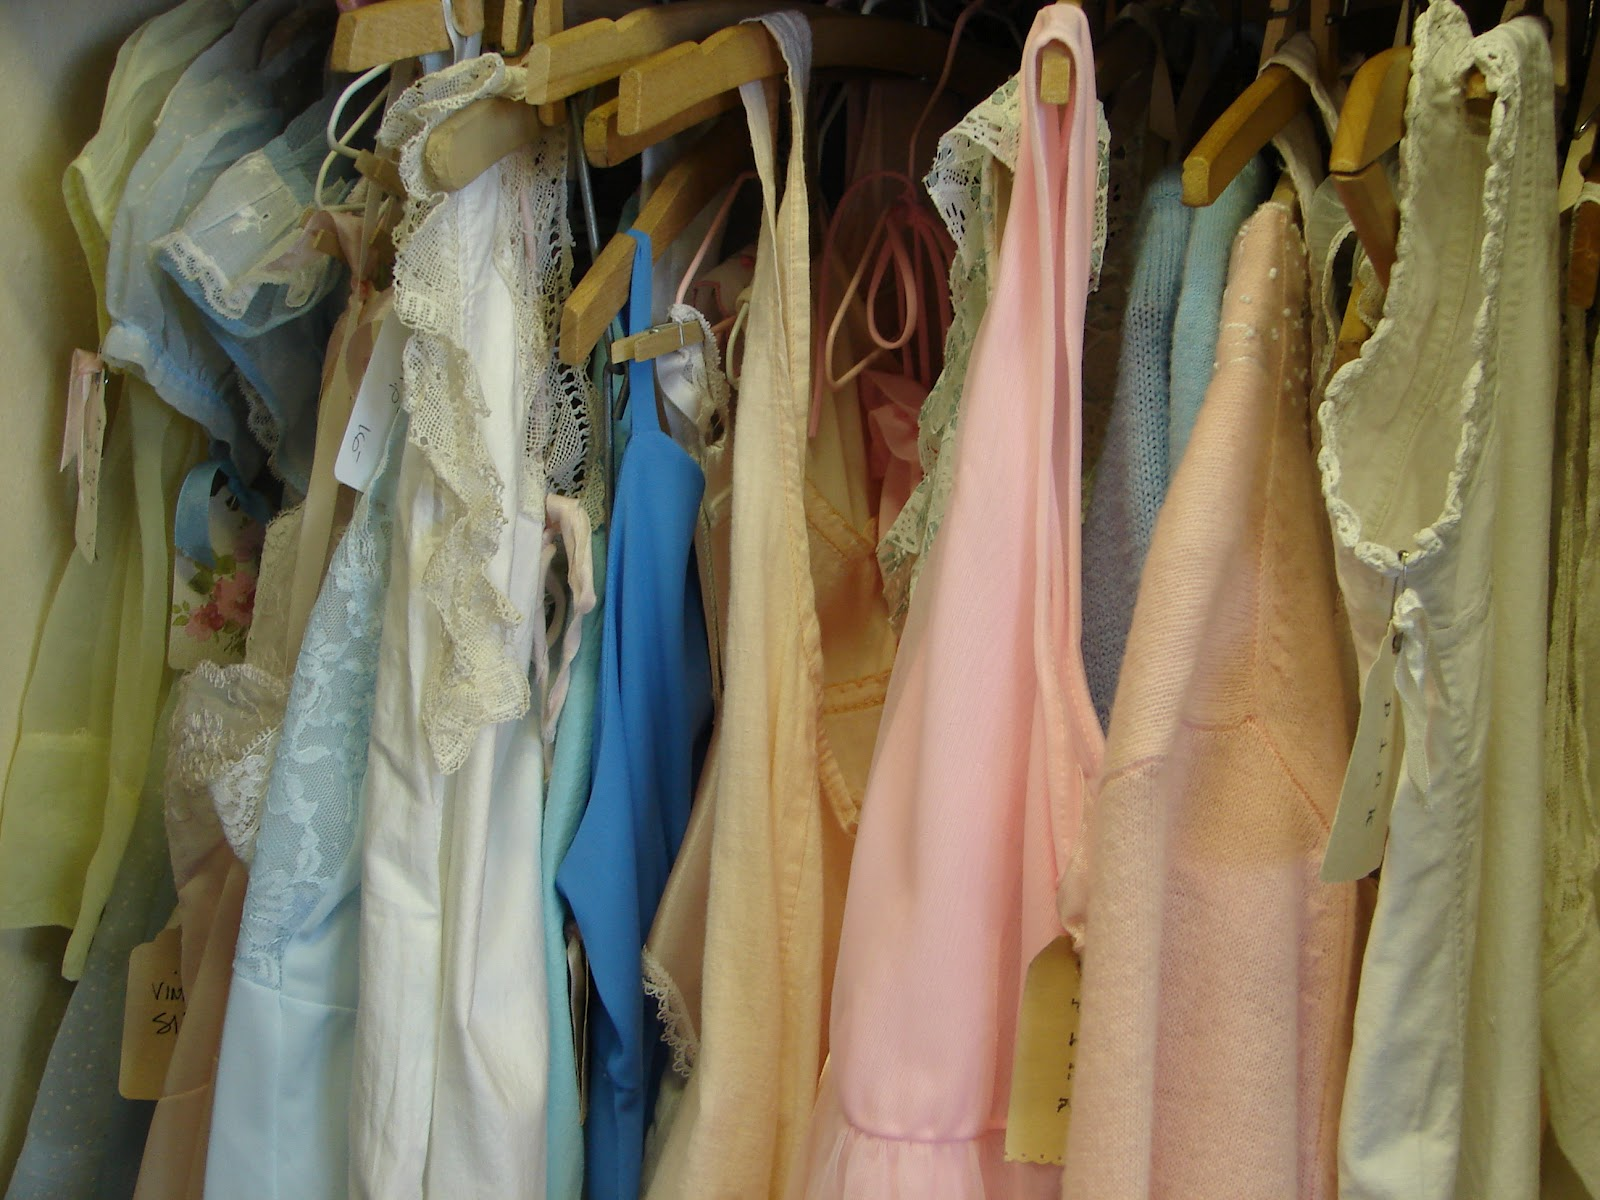 Monticello Antique Marketplace: Vintage Clothing...